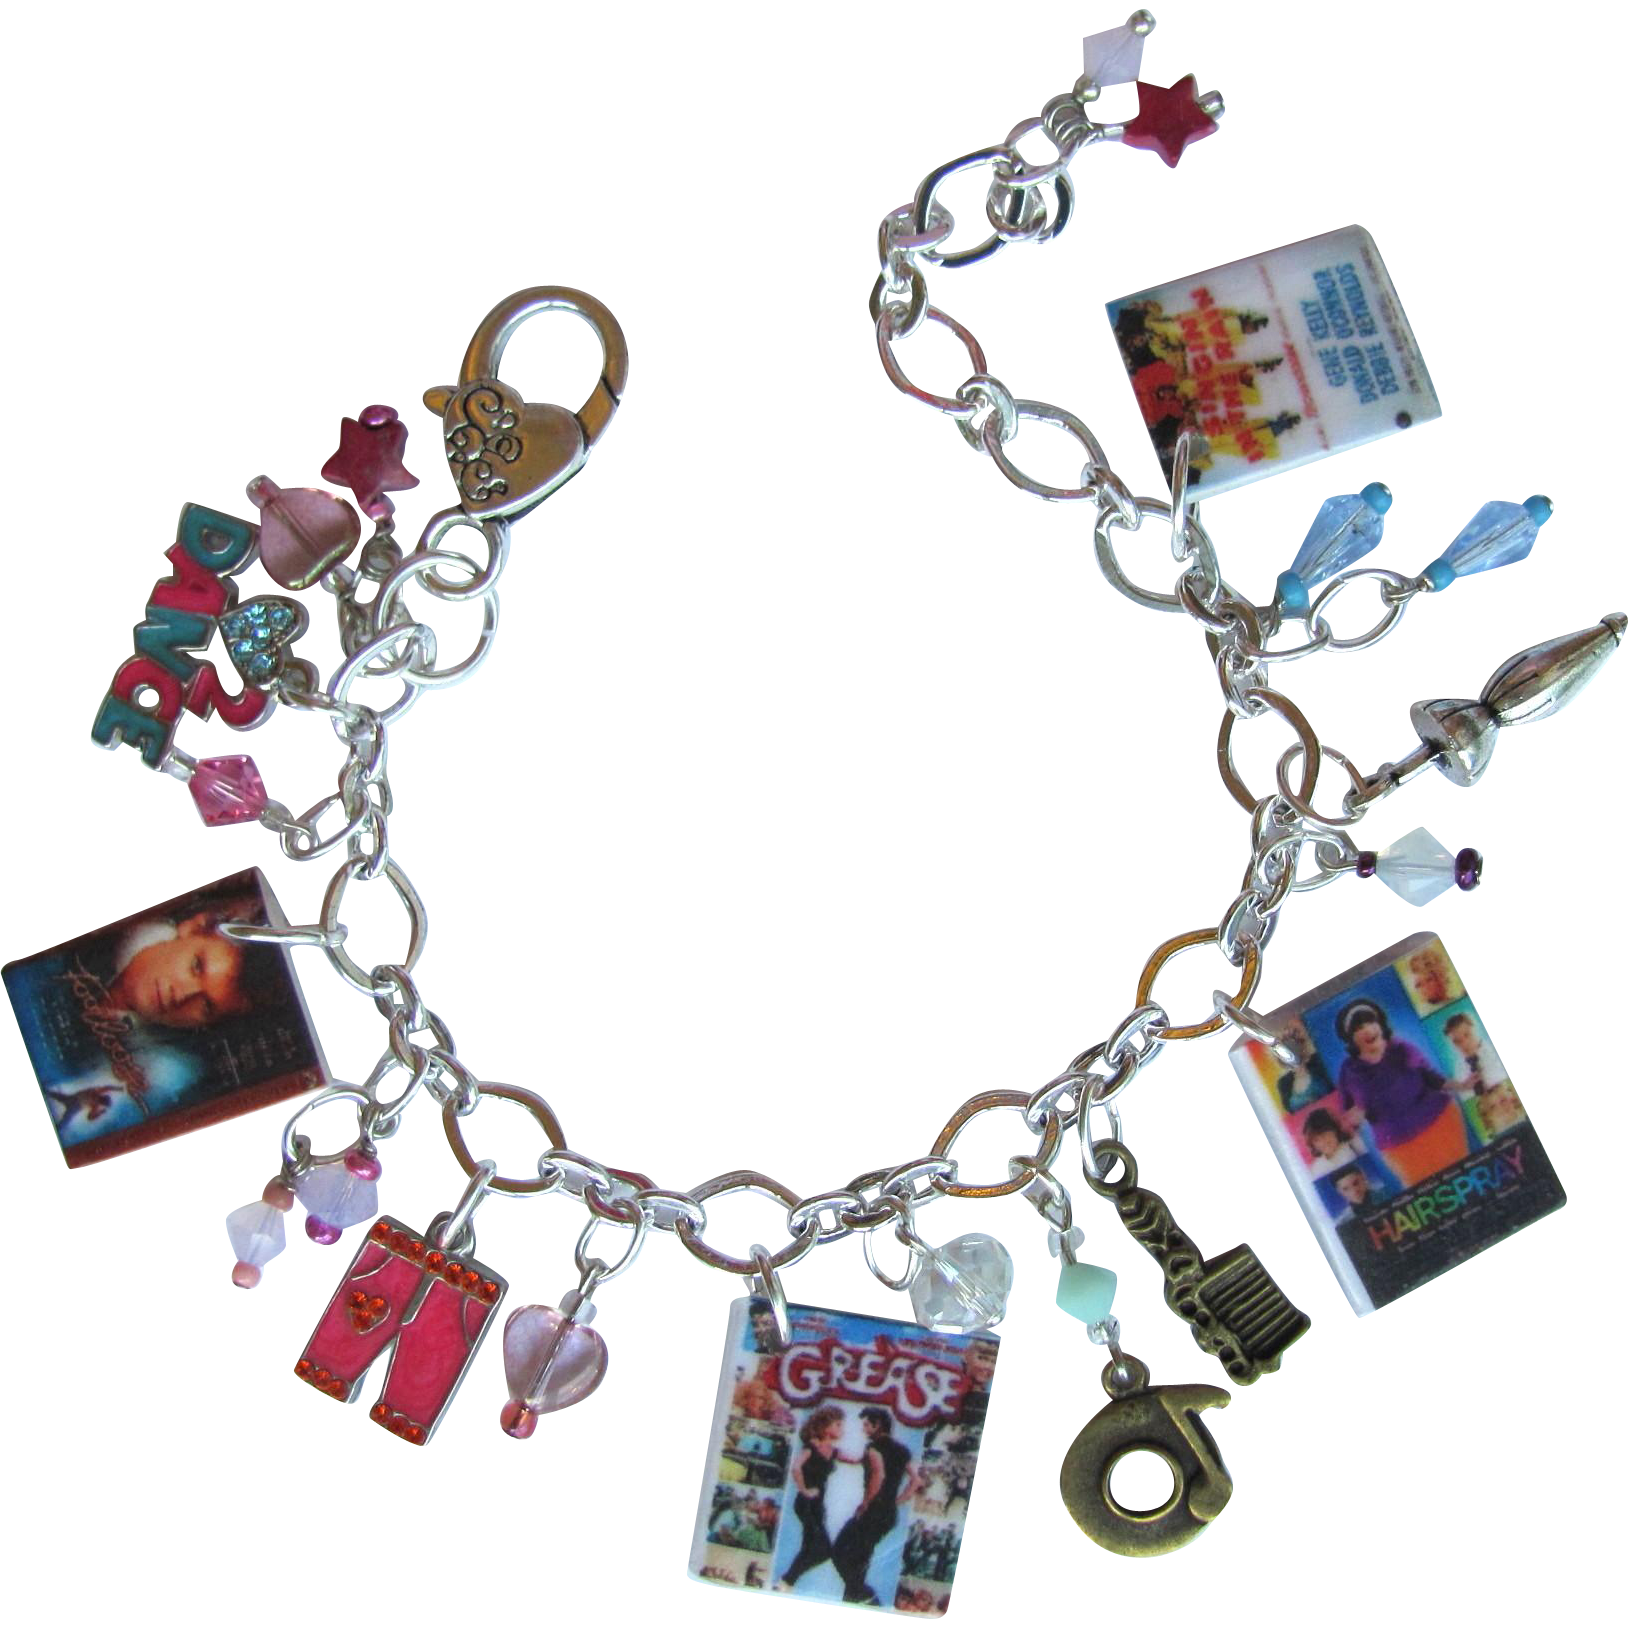 Classic Dance Movies Charm Bracelet with Unique Charms - Swarovski Crystals - Tiny DVDs - Sparkling Beads